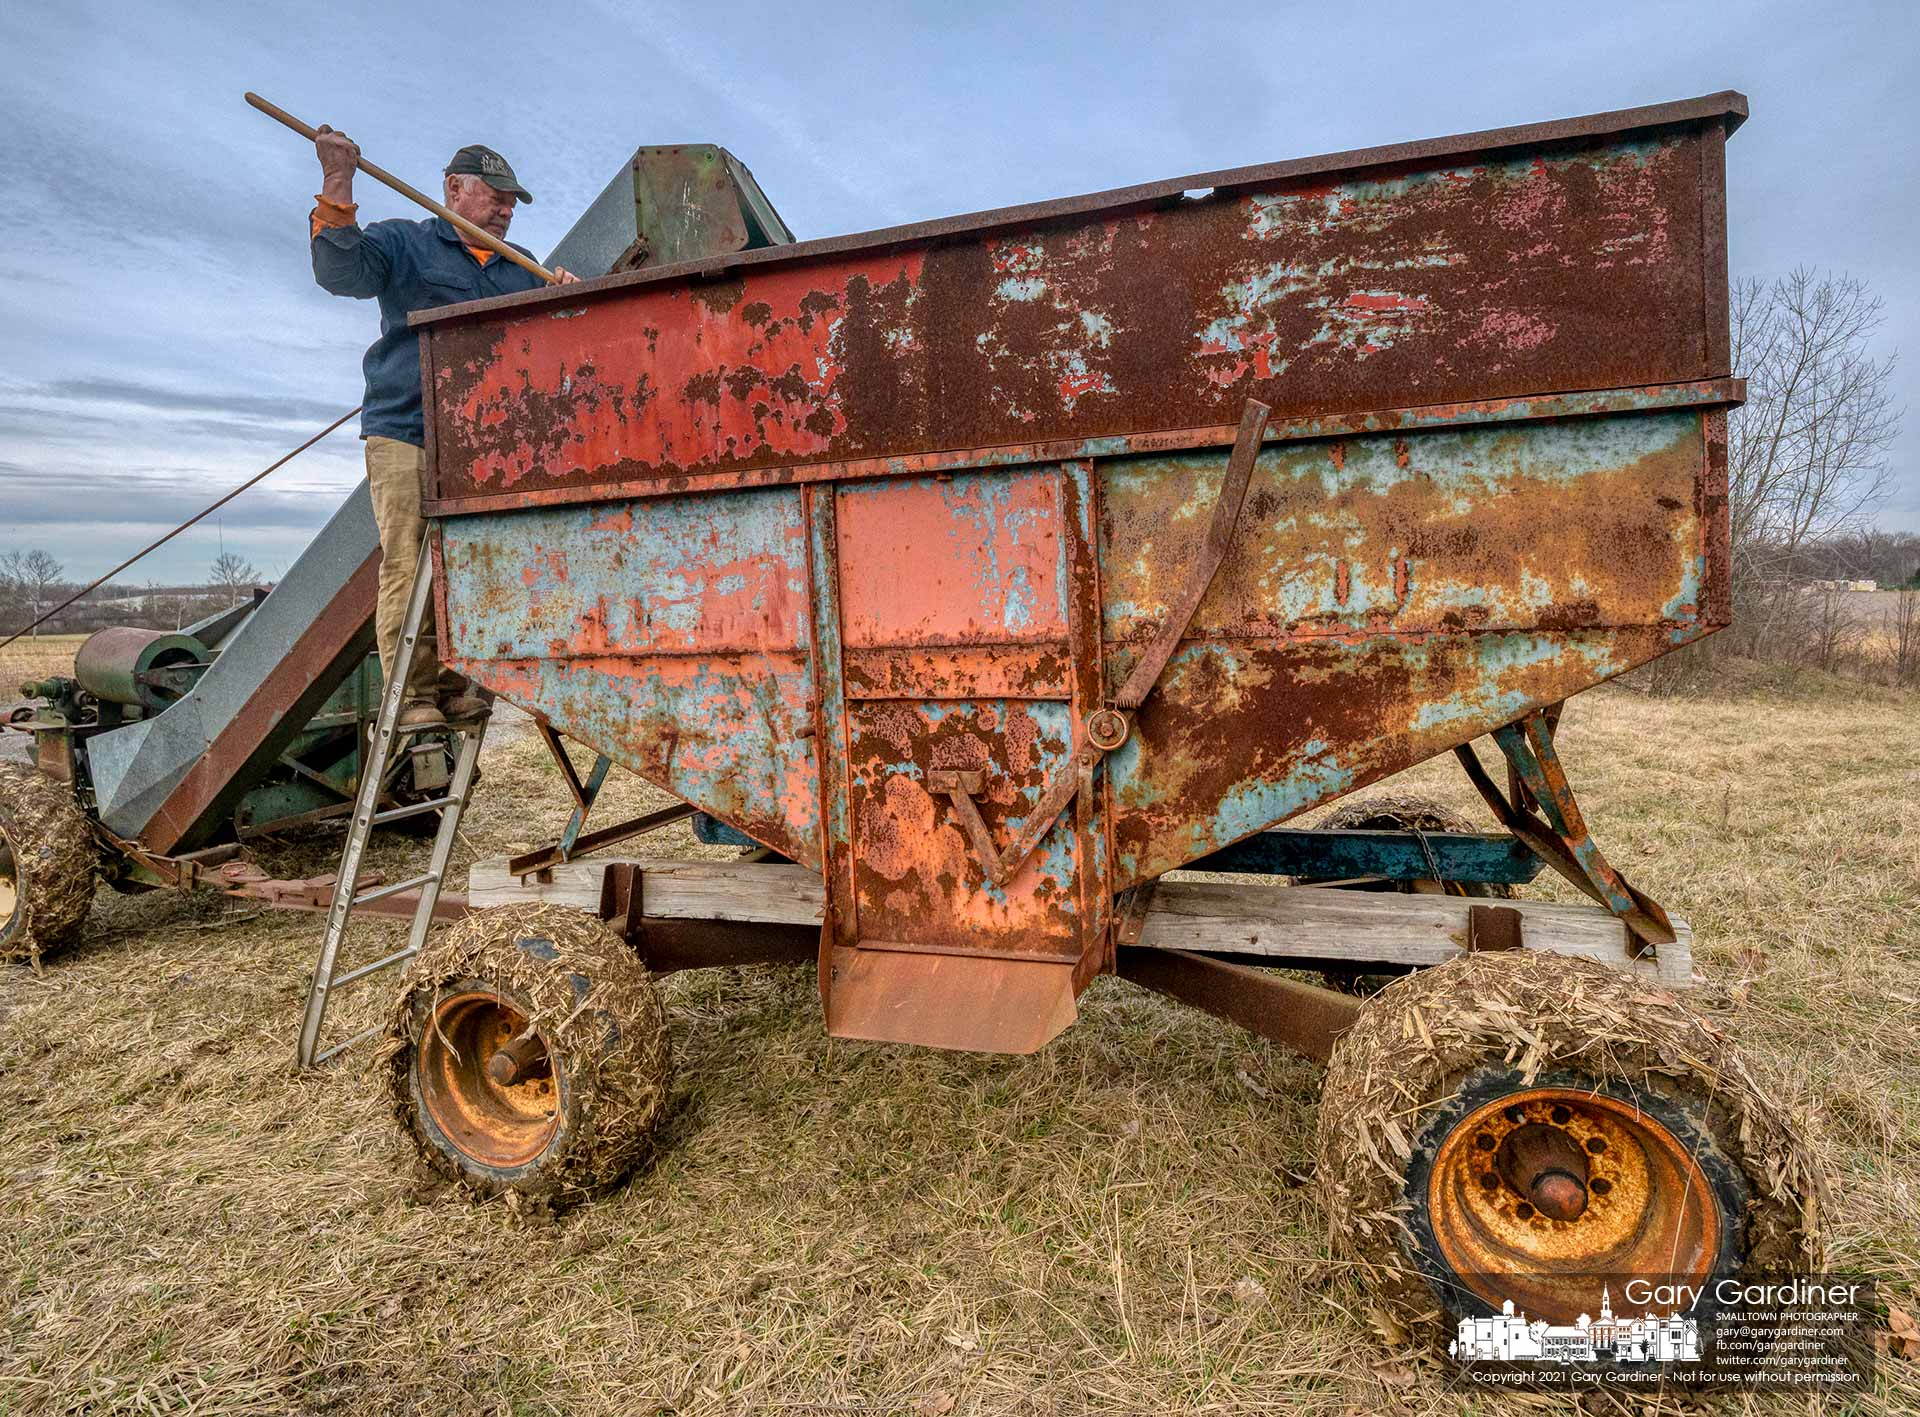 Kevin Scott rakes corn leveling it in the wagon he's using to complete the harvest on the Braun Farm. My Final Photo for March 14, 2021, π Day.